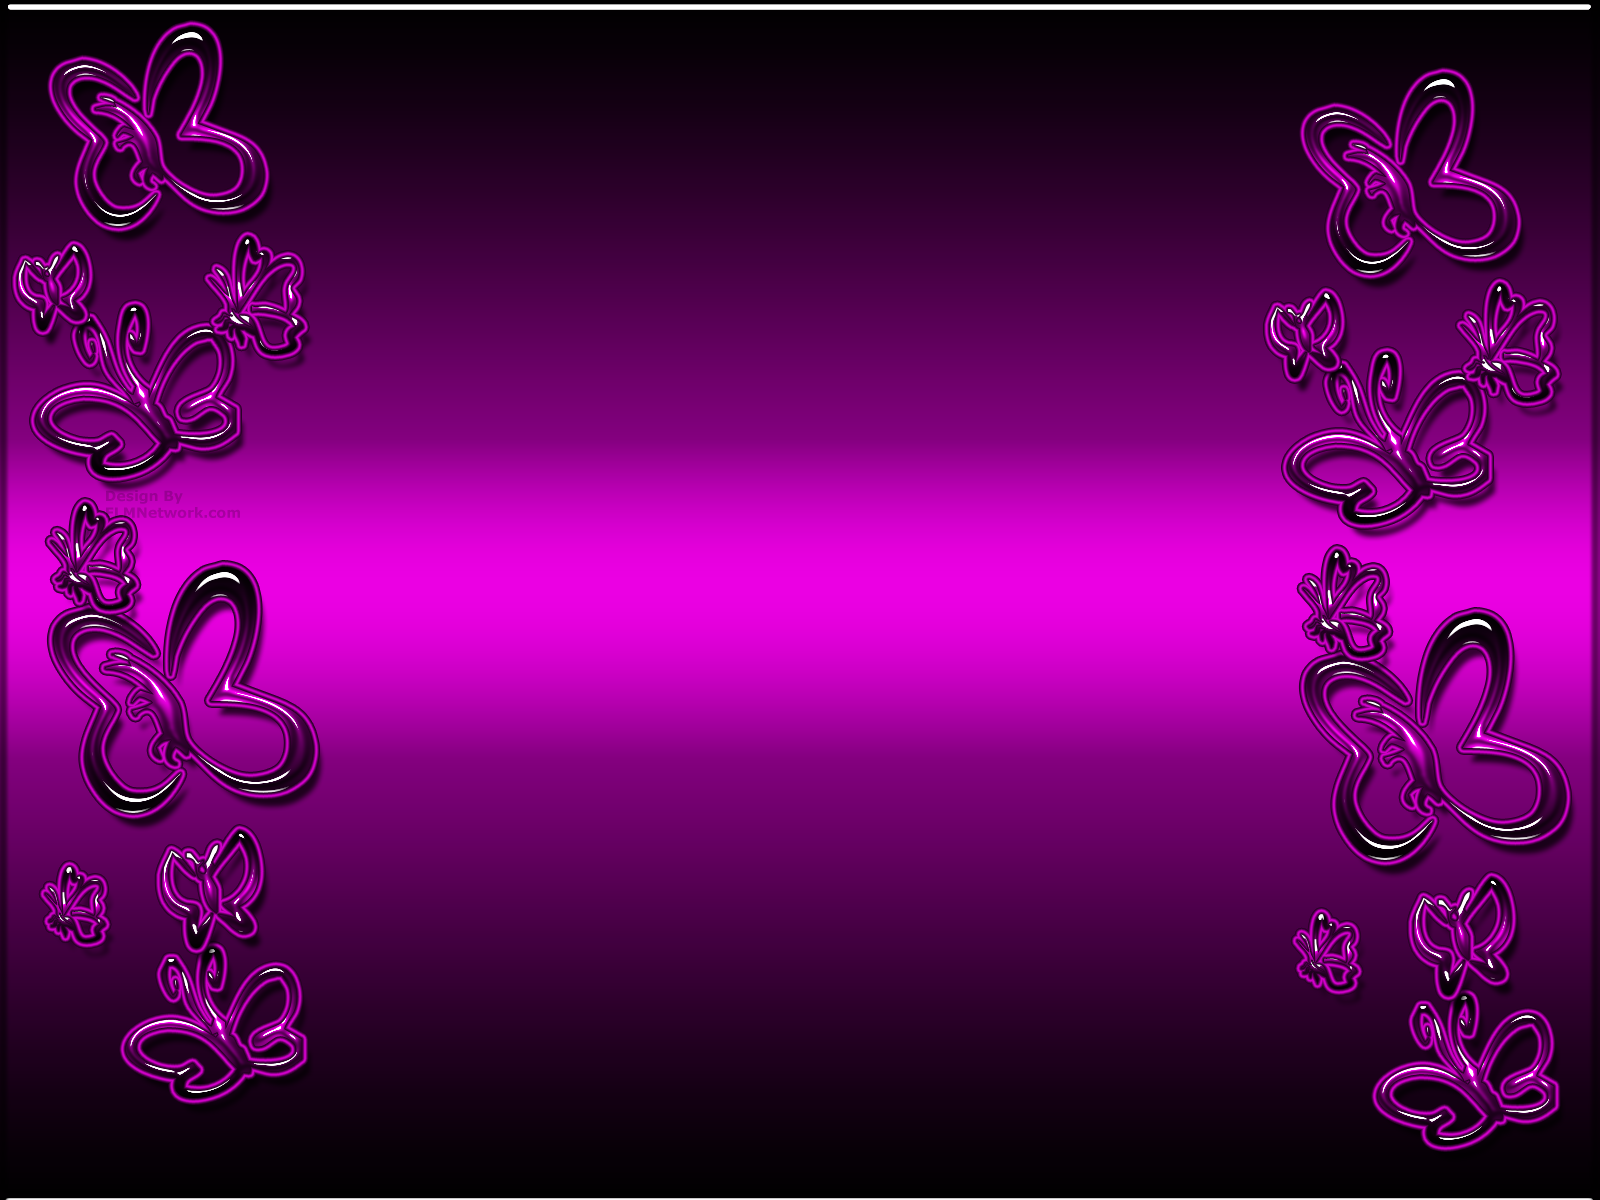 Purple Background Images 1600x1200